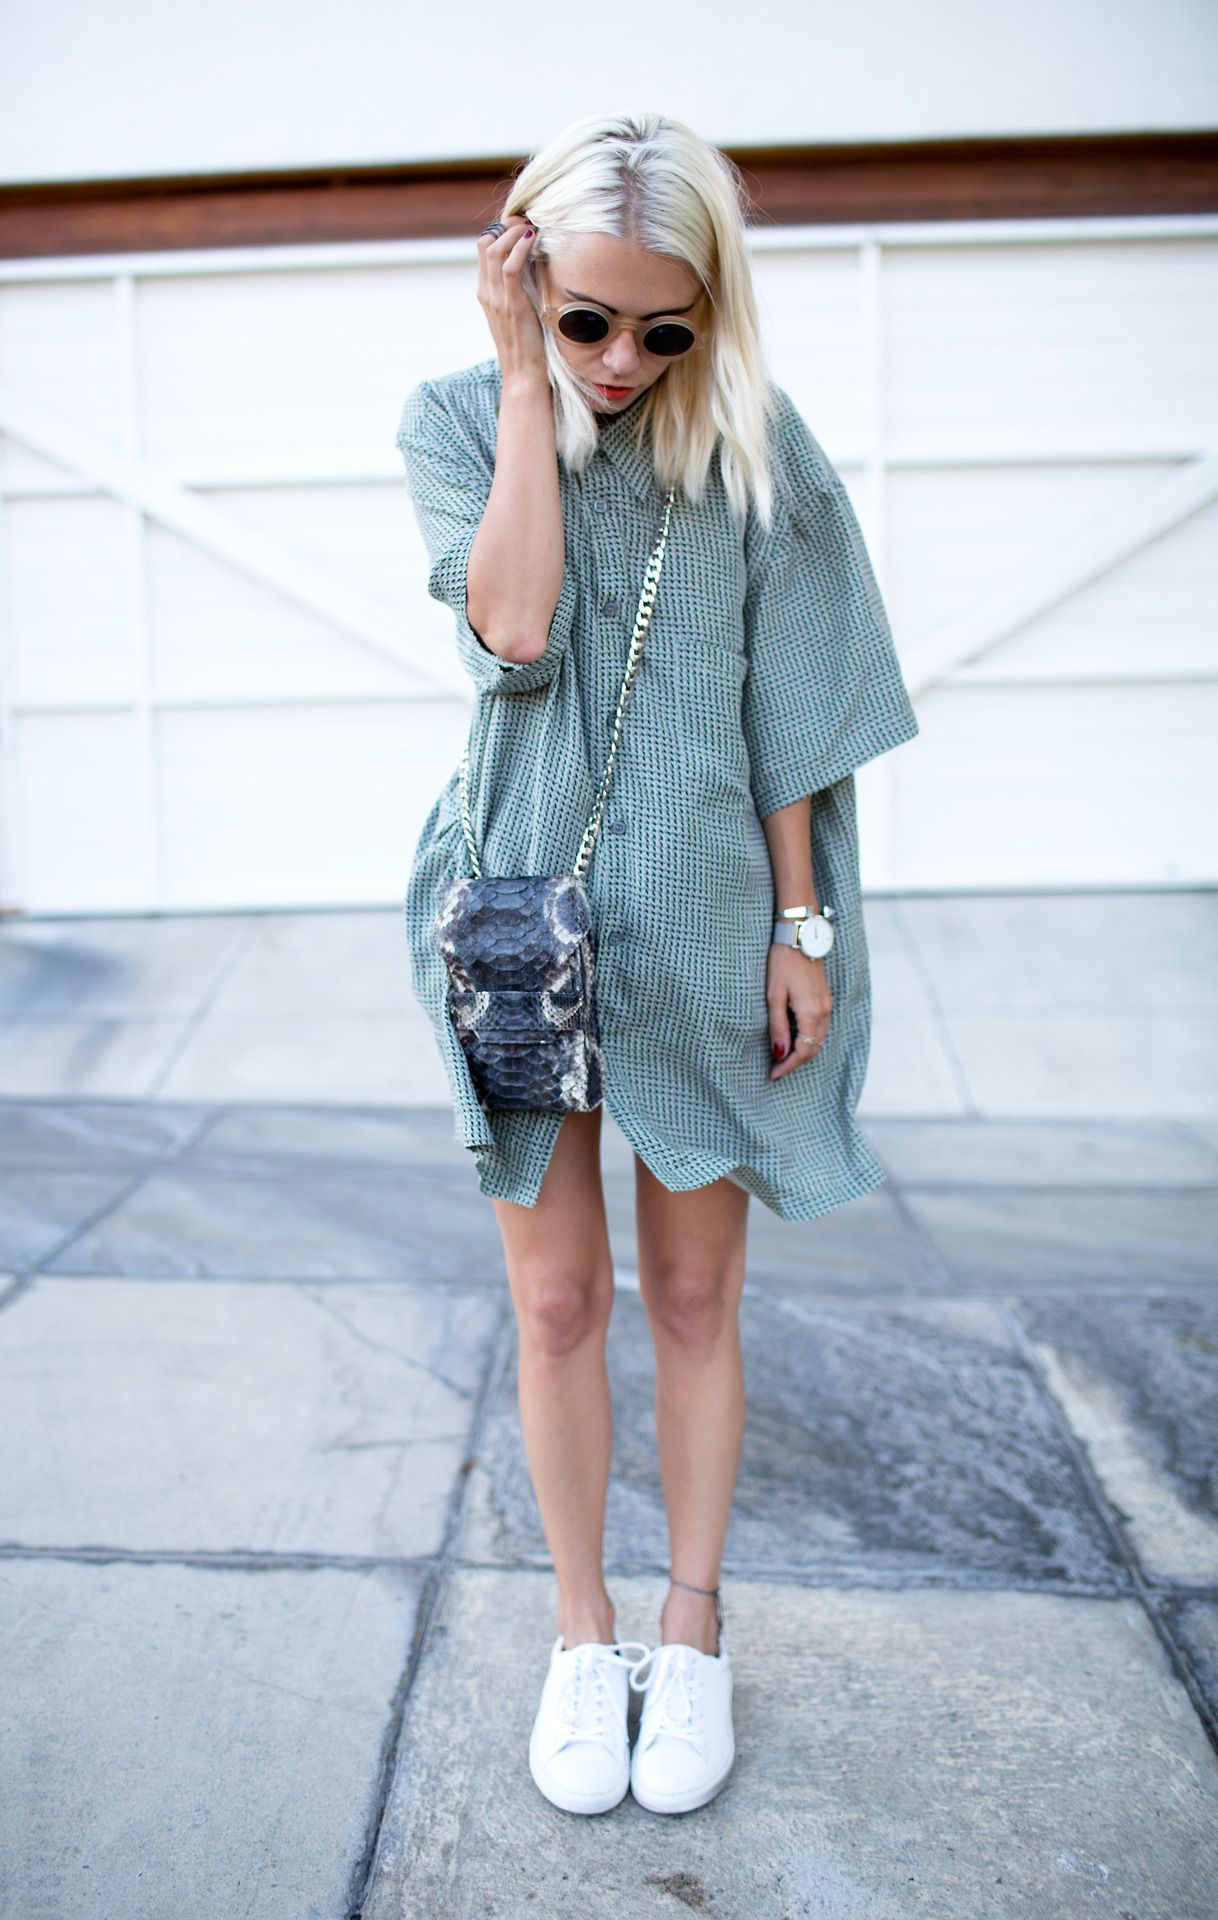 Green t shirt dress outfit  Pin by Anna Rutledge on the clothes i LoVe  Pinterest  Trainers